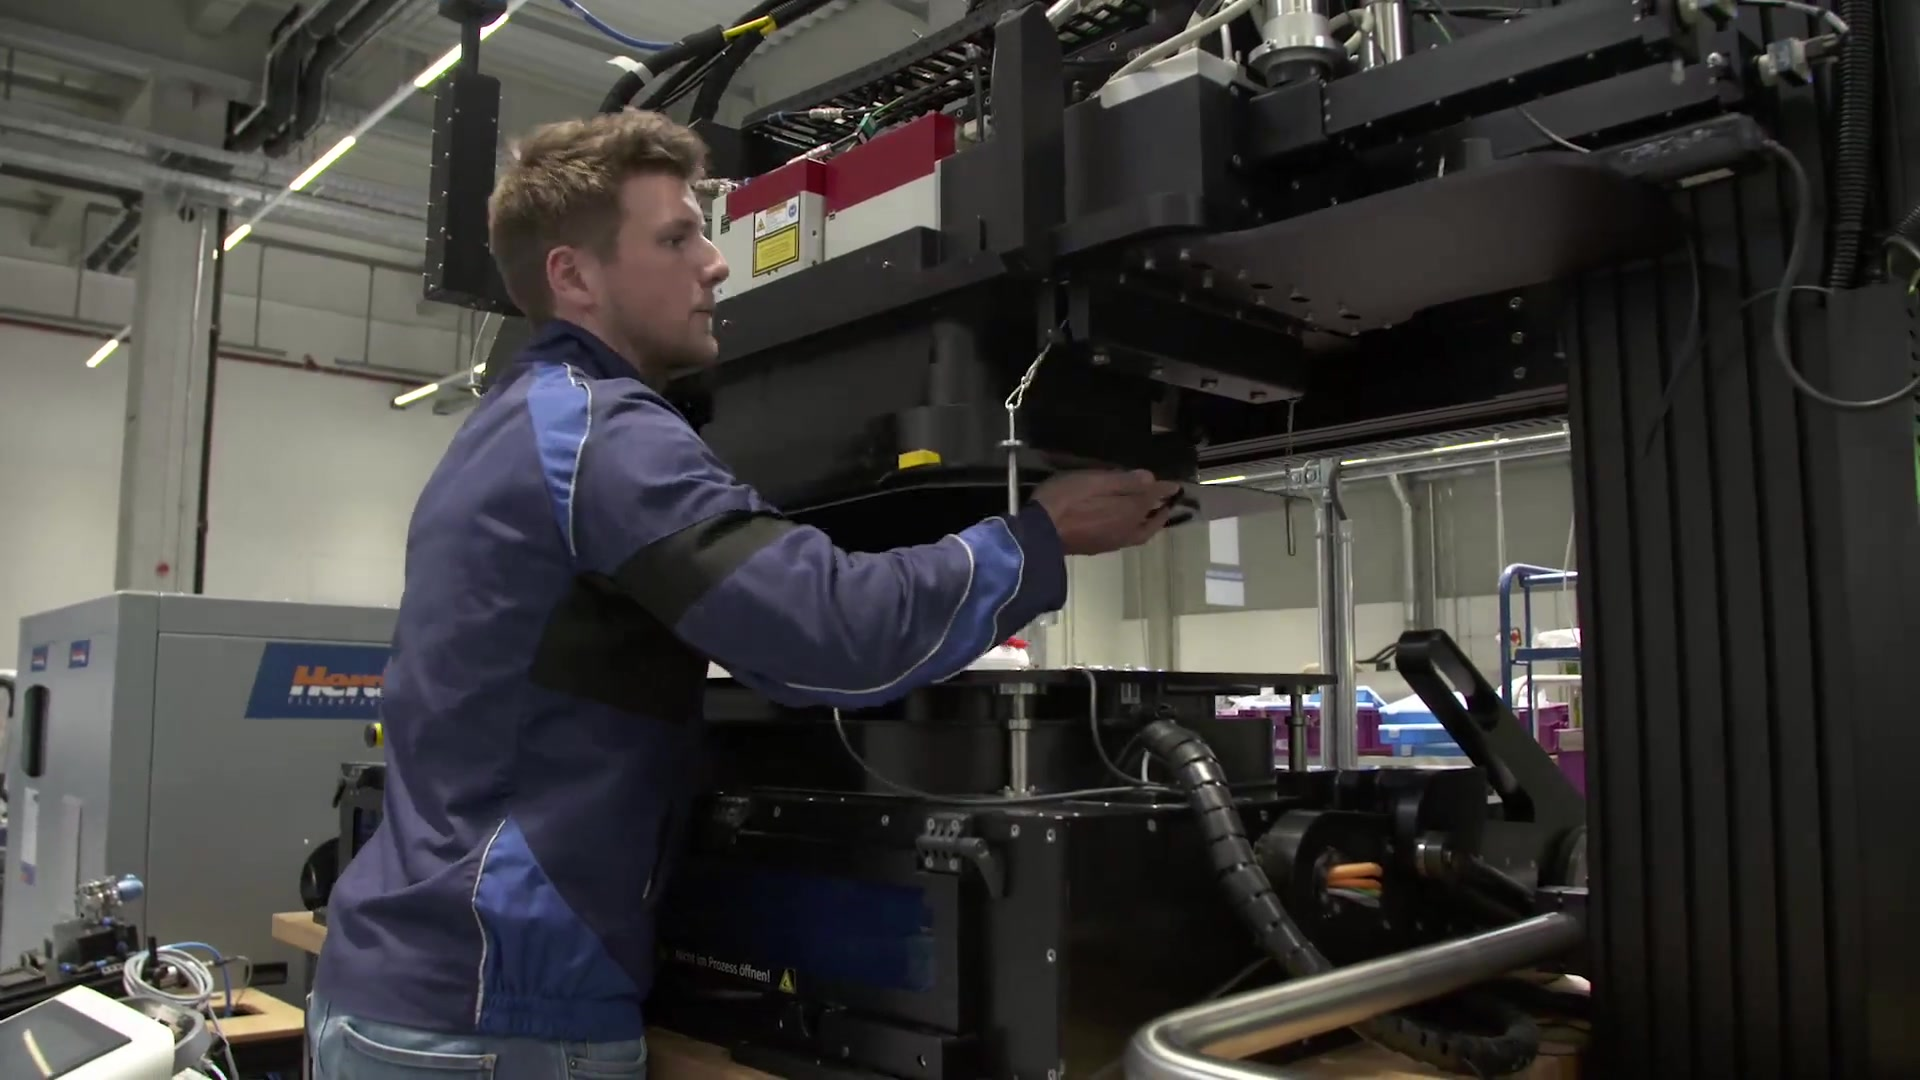 BMW Group Additive Manufacturing Campus - Additive manufacturing metal